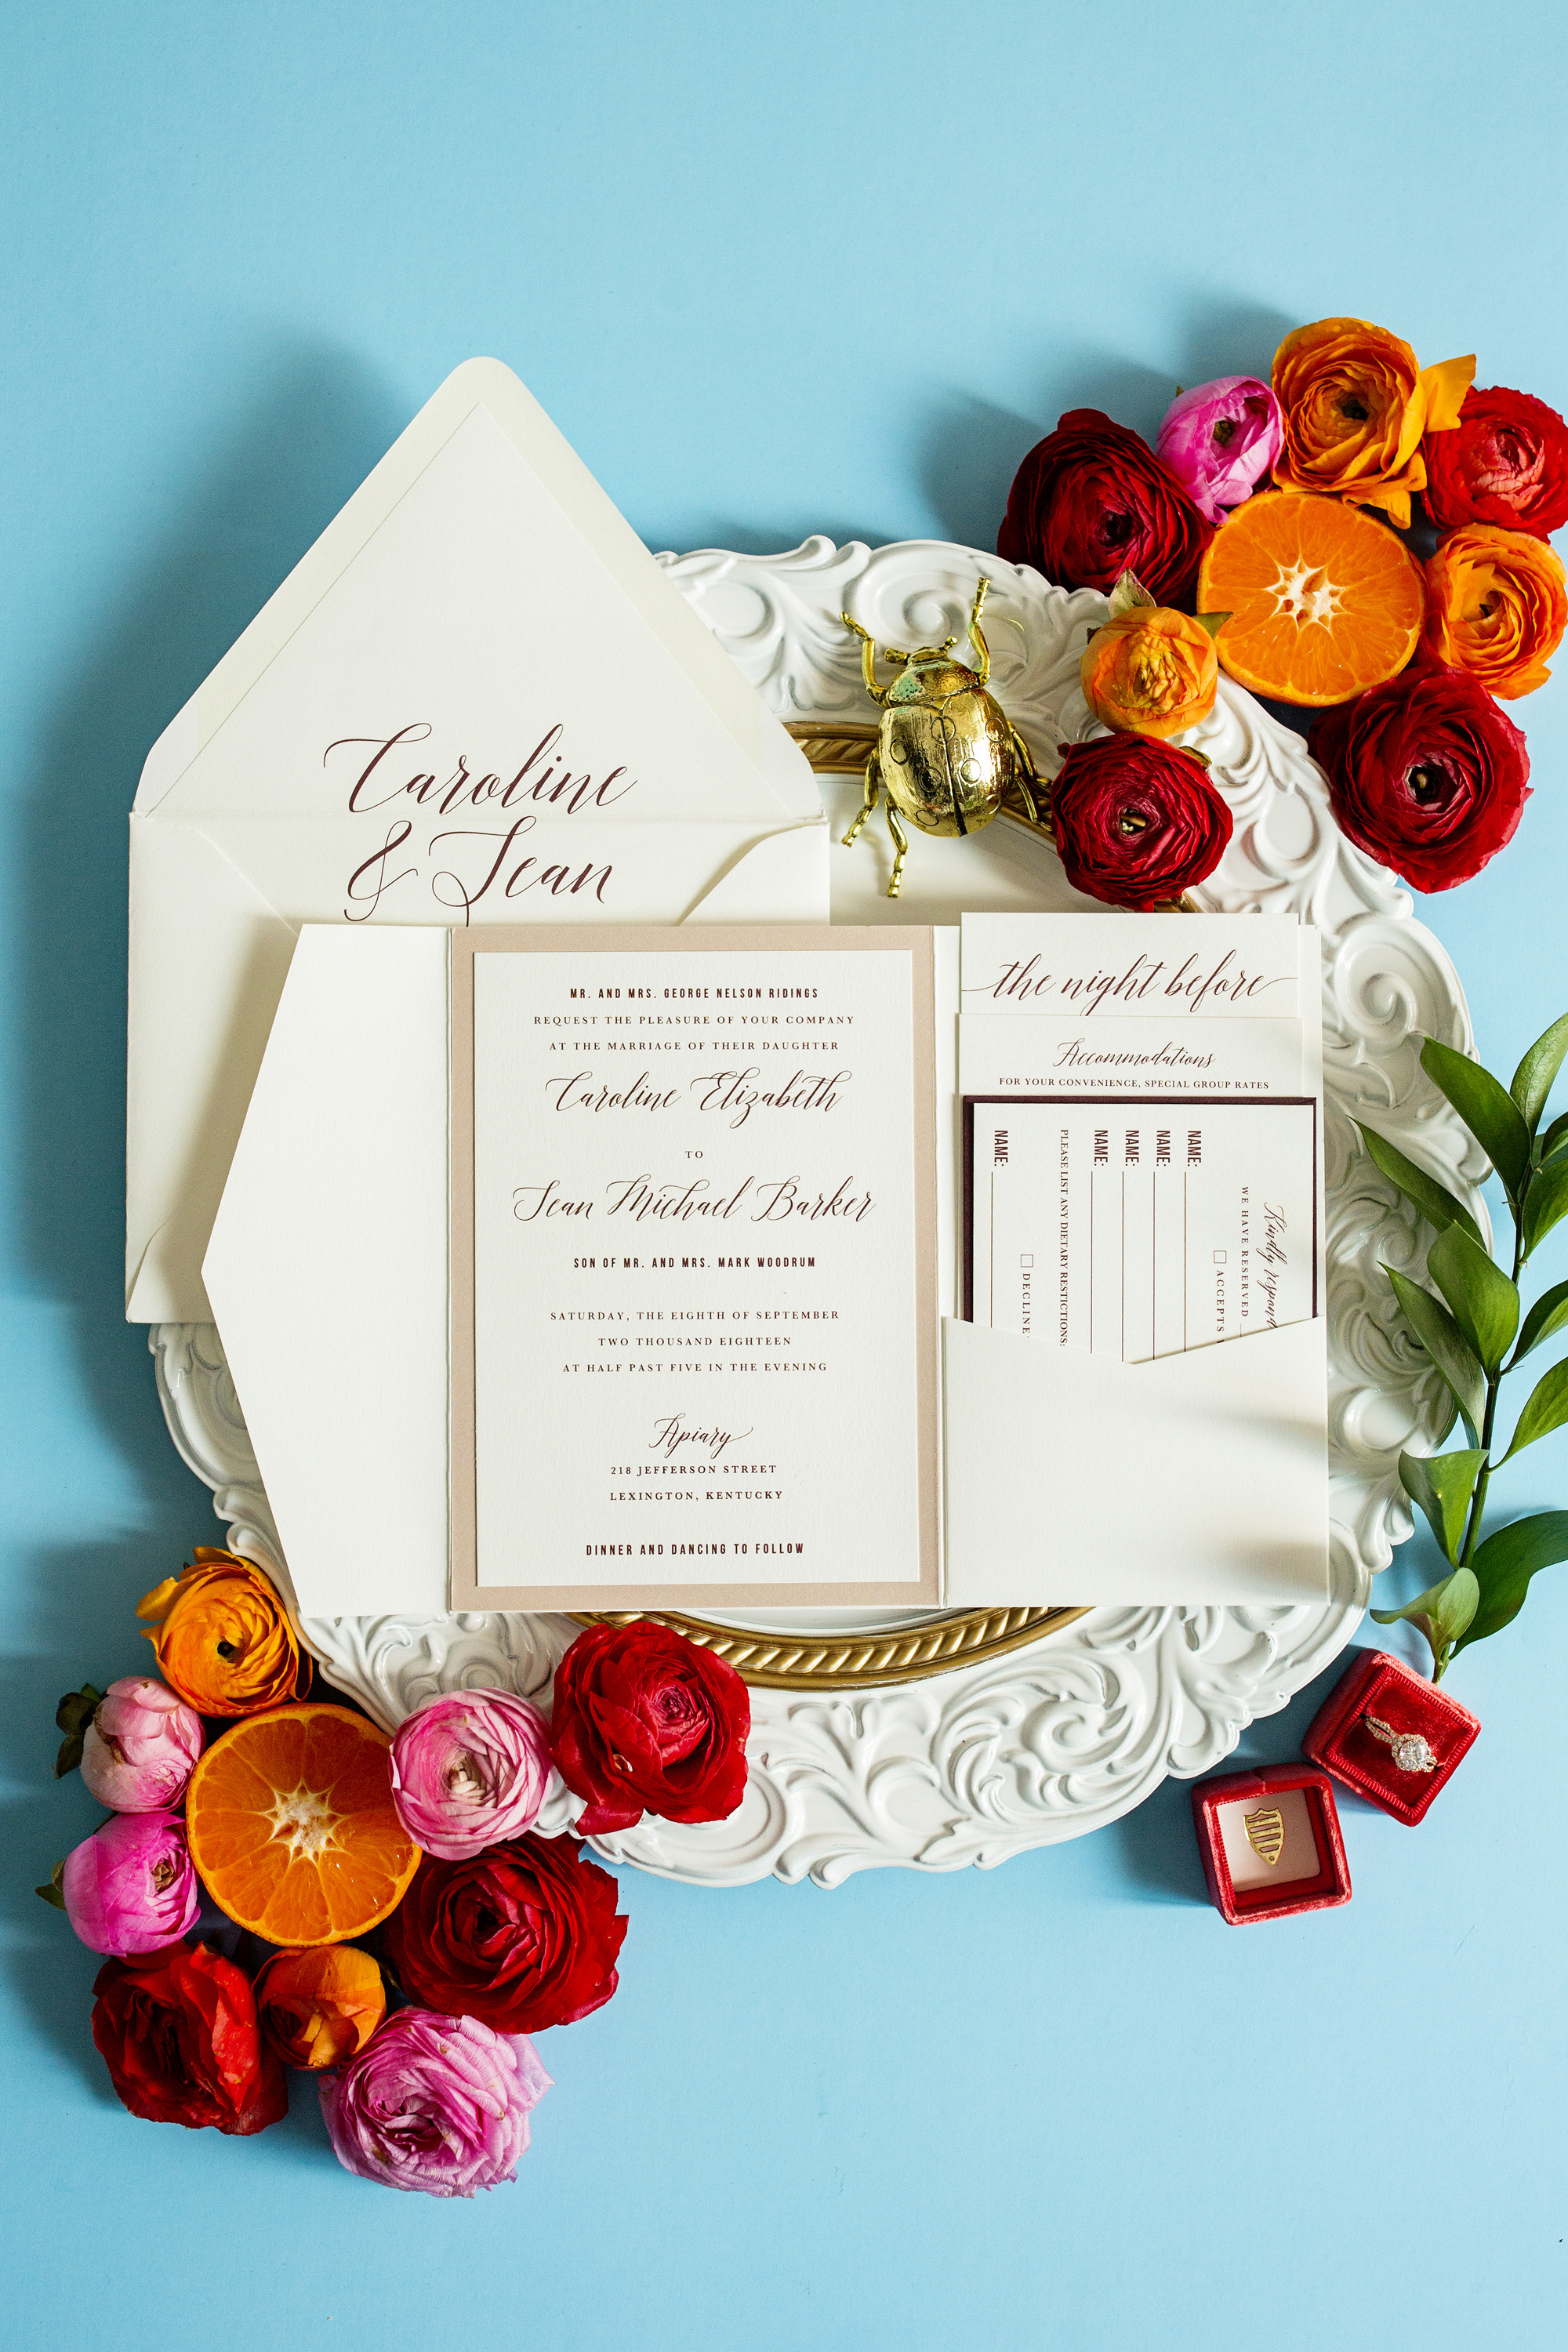 Seriously_Sabrina_Photography_Commercial_Simply_Done_Invites_2019_March_142